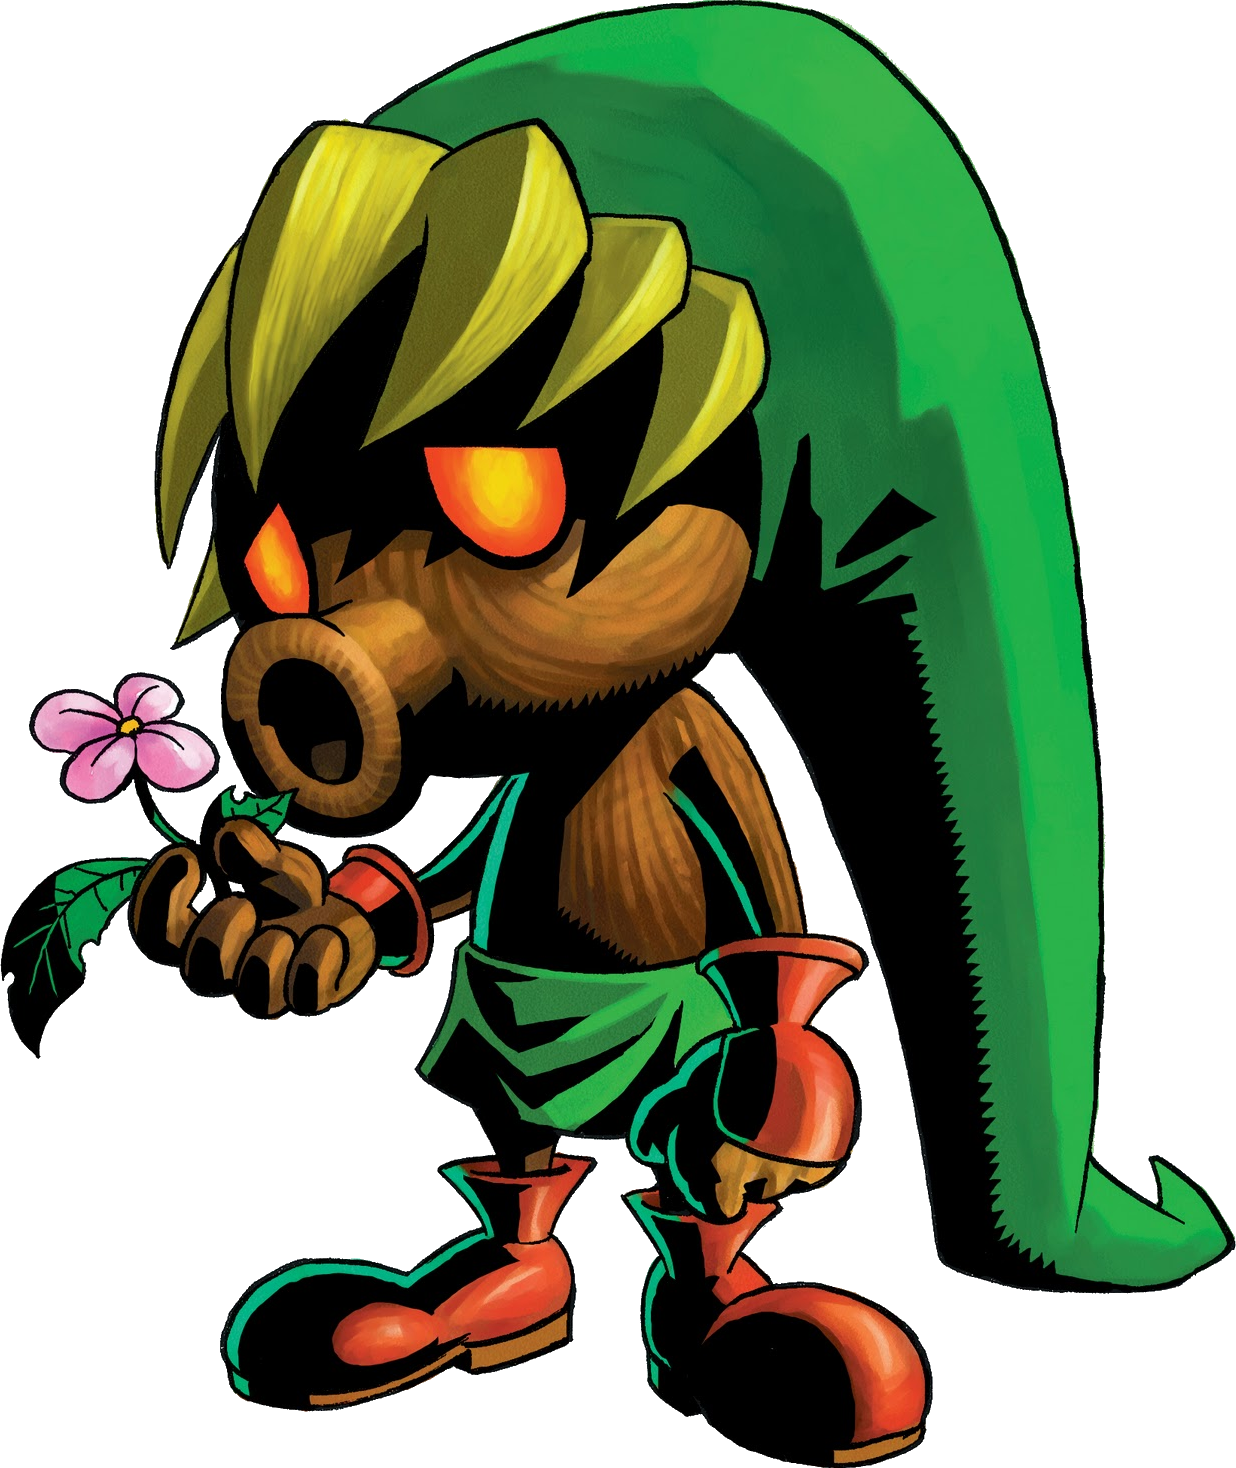 Deku Link Is A Character From The Legend Of Zelda Majora S Mask It Is The Form Link Takes Upon Wearing The Zelda Tattoo Deku Mask Legend Of Zelda Characters